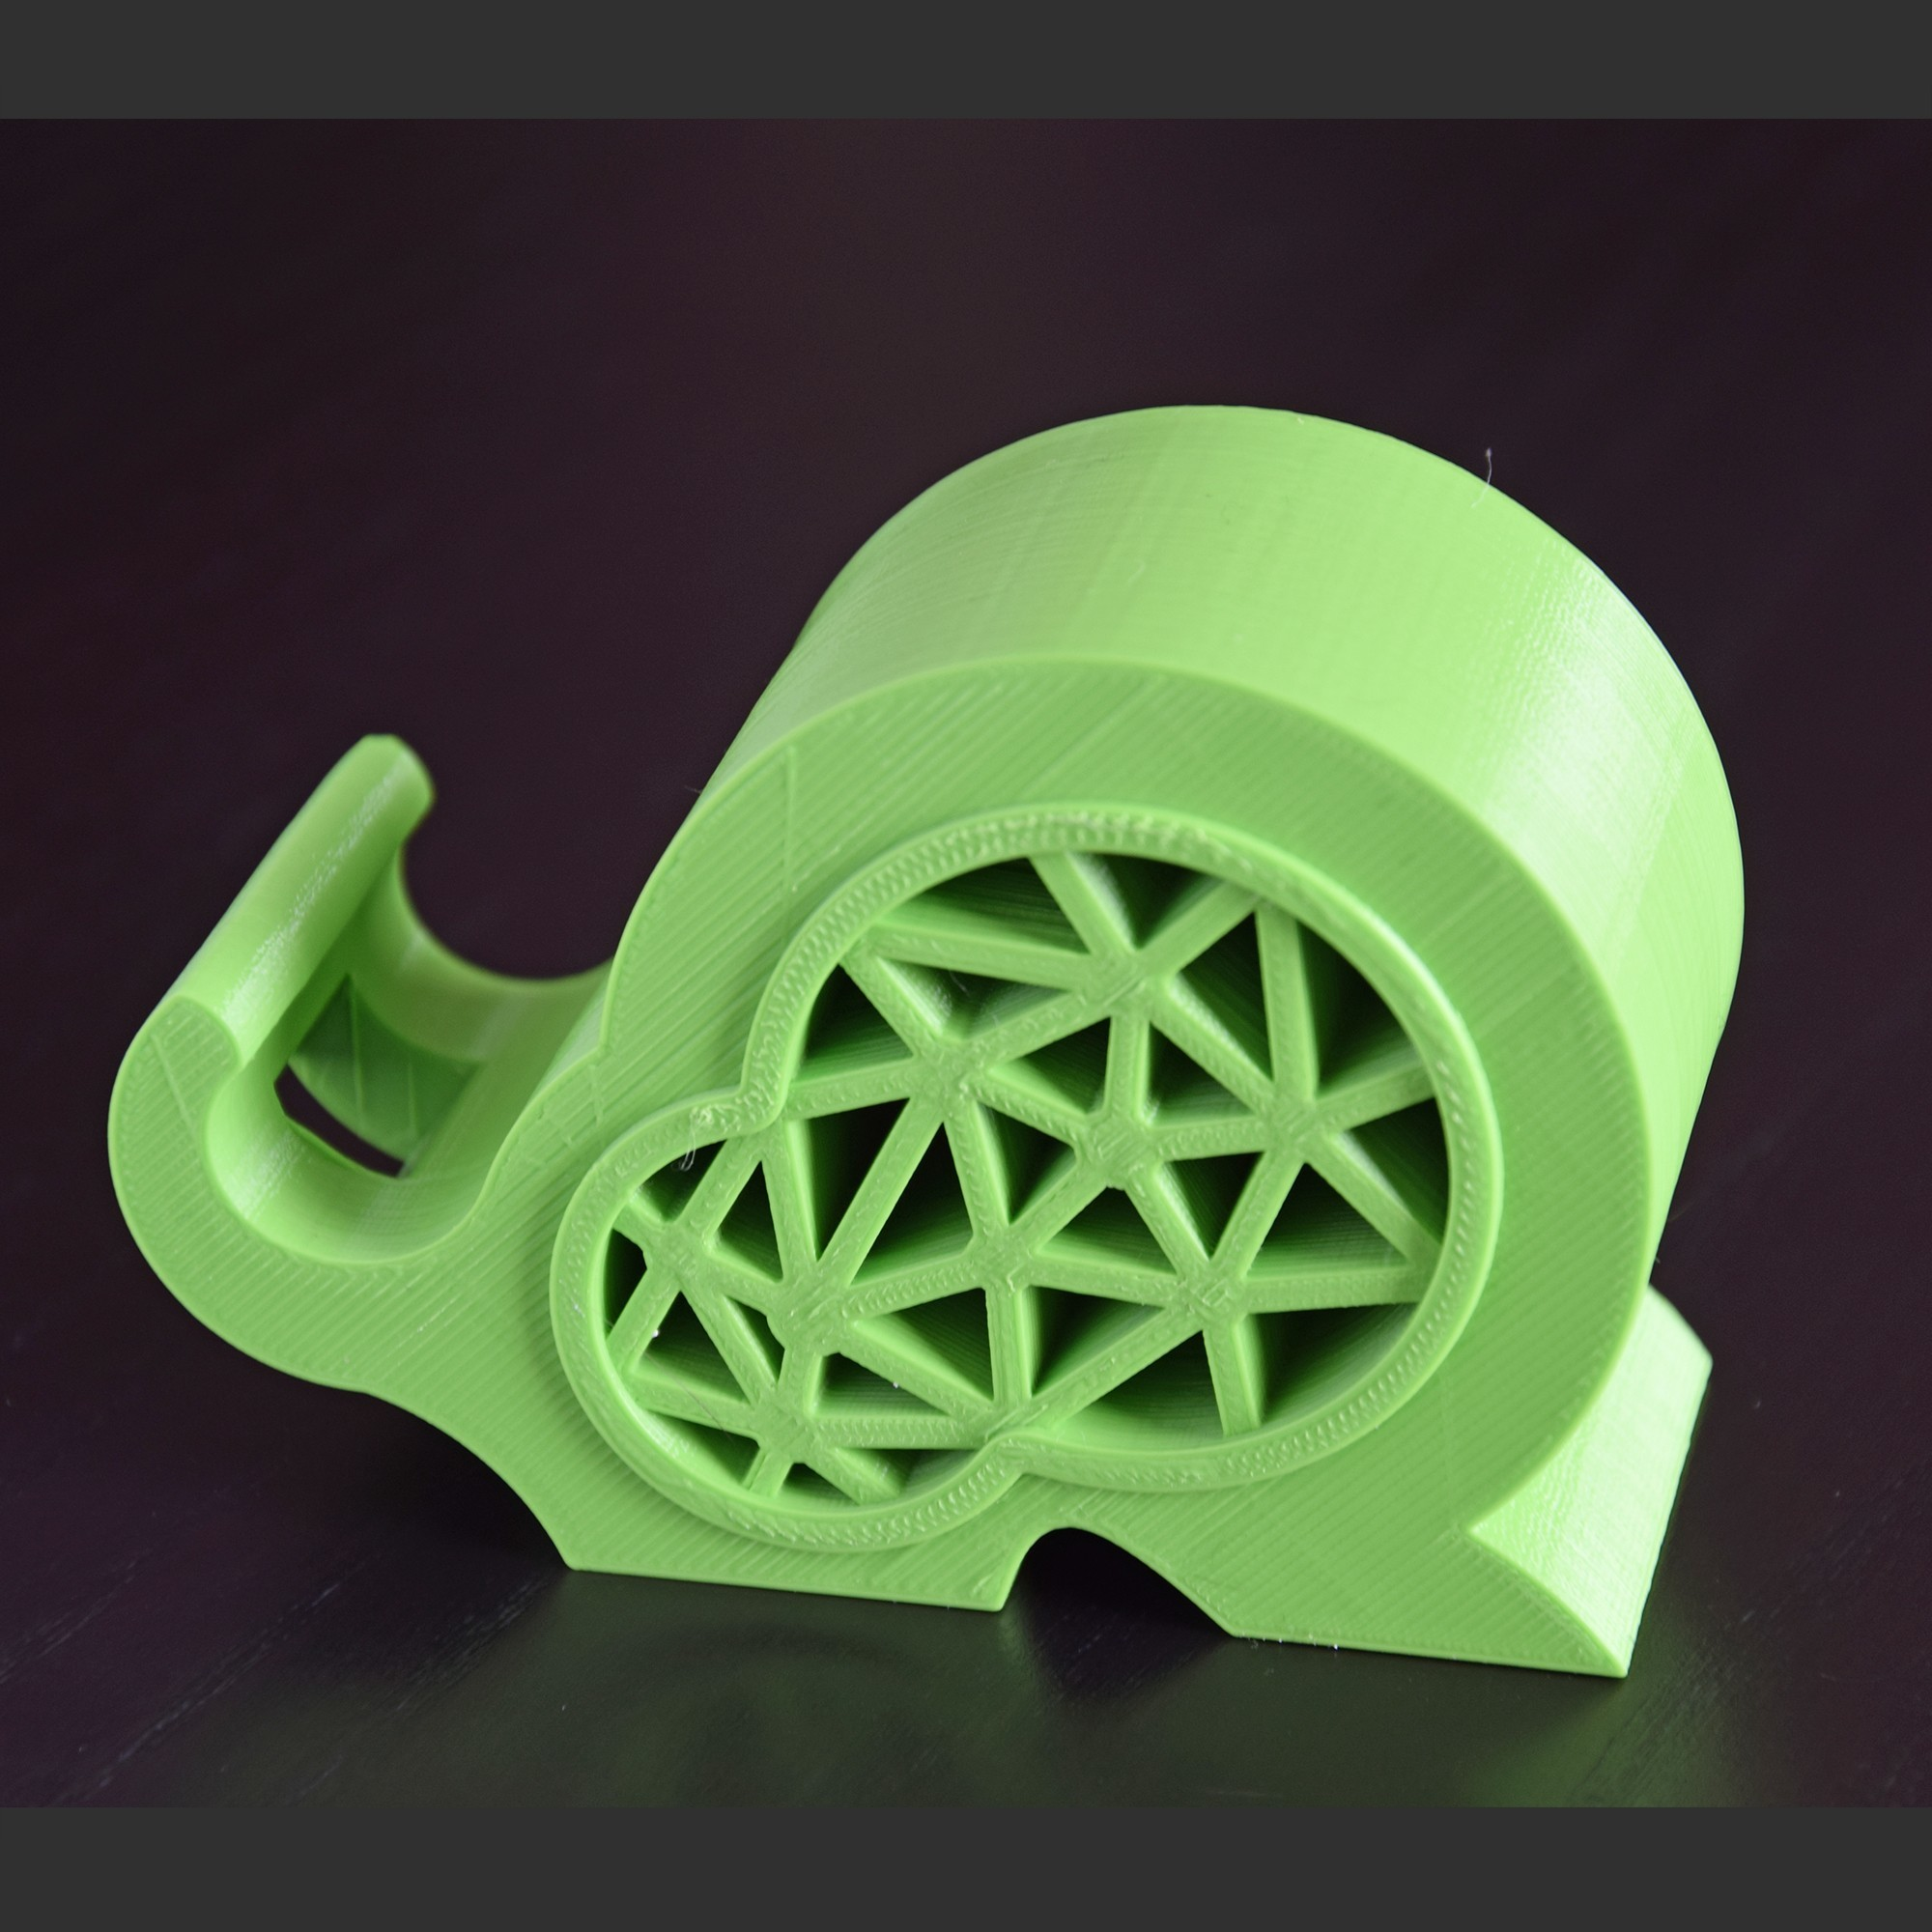 magigoocontest_mobileholder_byNawamy_02.jpg Download free STL file Magigoo mobile-holder • Template to 3D print, Nawamy